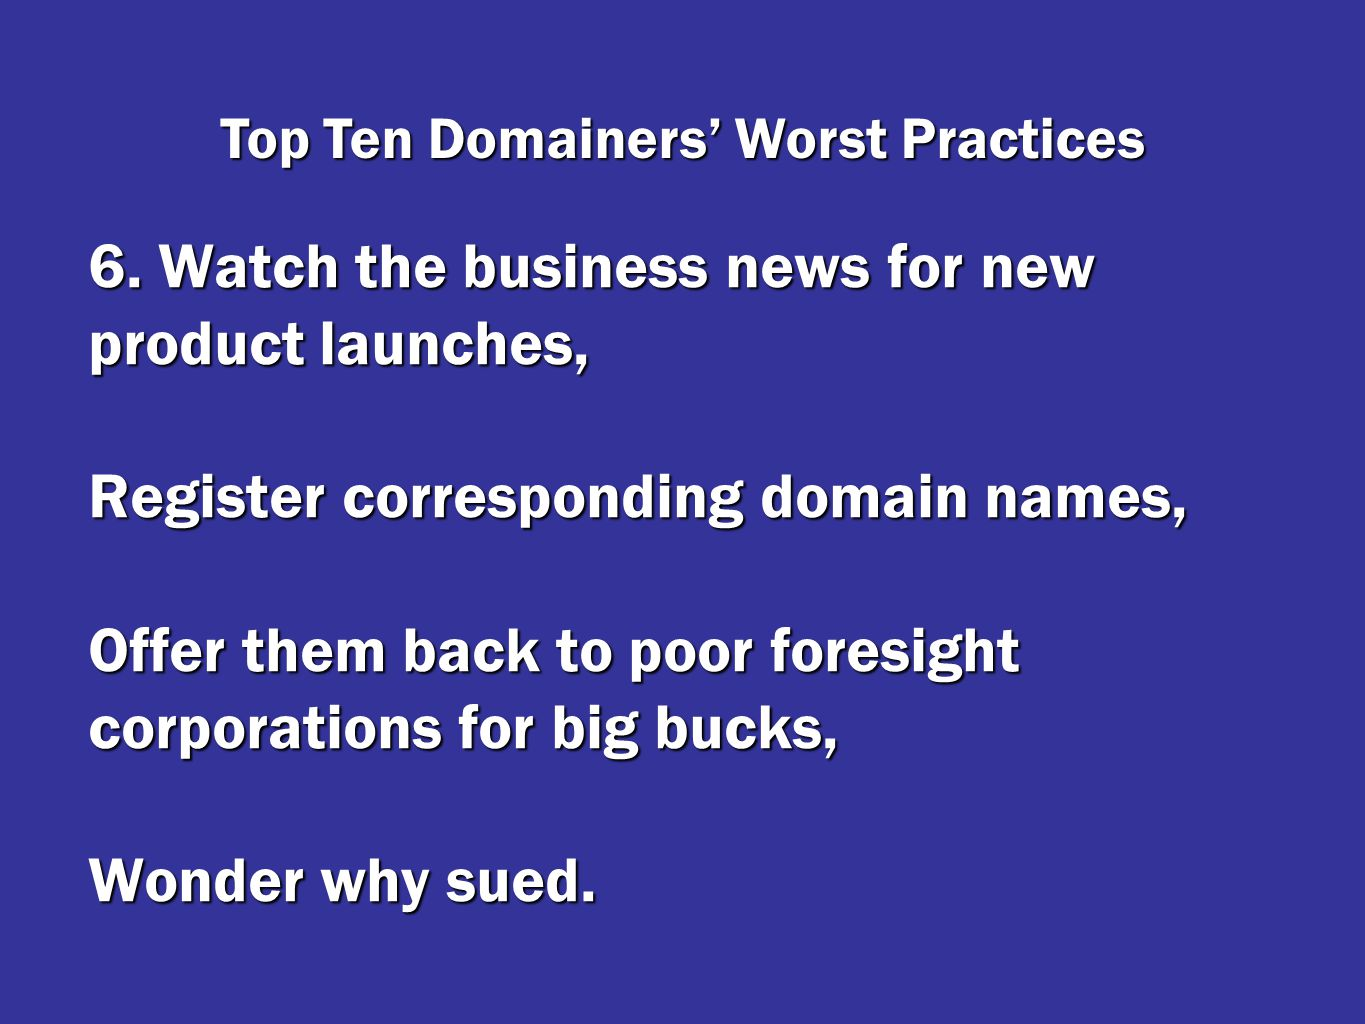 6. Watch the business news for new product launches, Register corresponding domain names, Offer them back to poor foresight corporations for big bucks